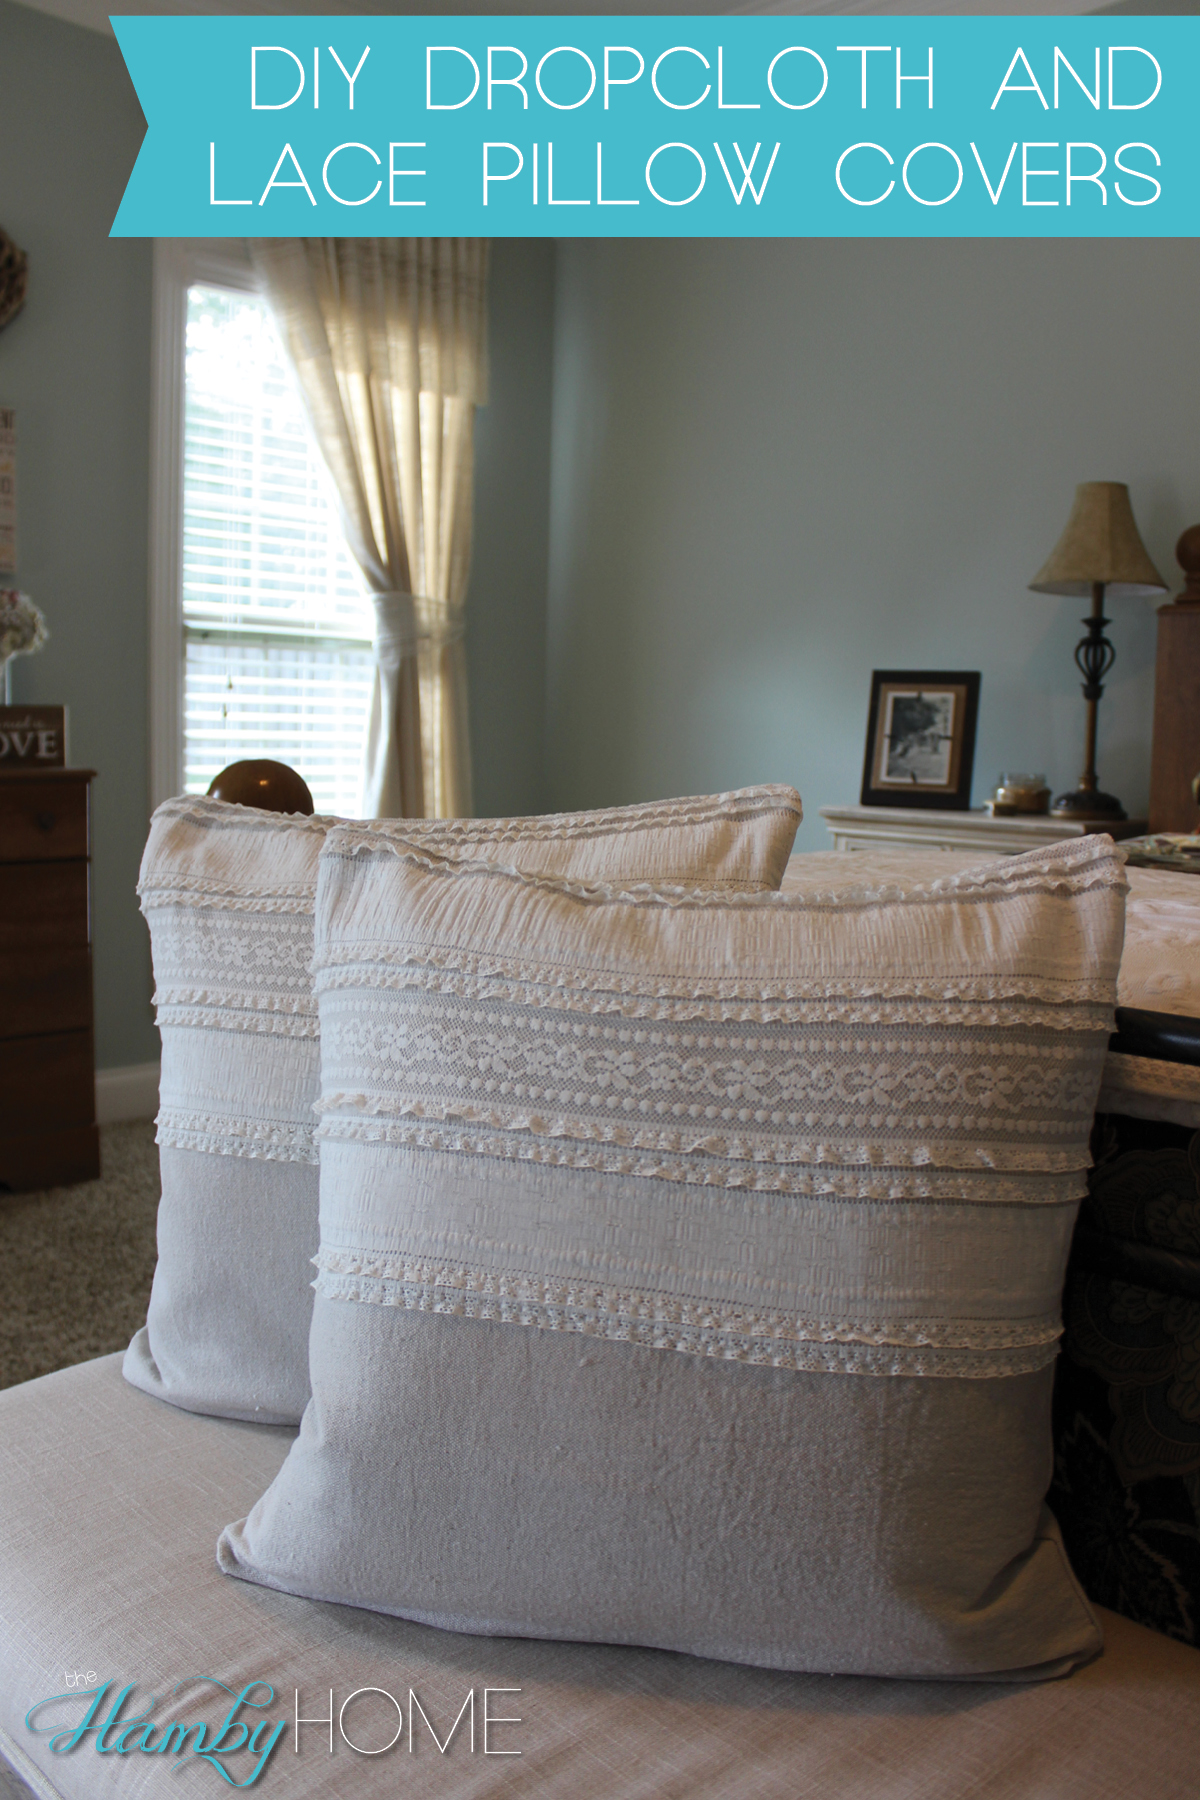 diy no sew dropcloth lace pillow covers the hamby home. Black Bedroom Furniture Sets. Home Design Ideas